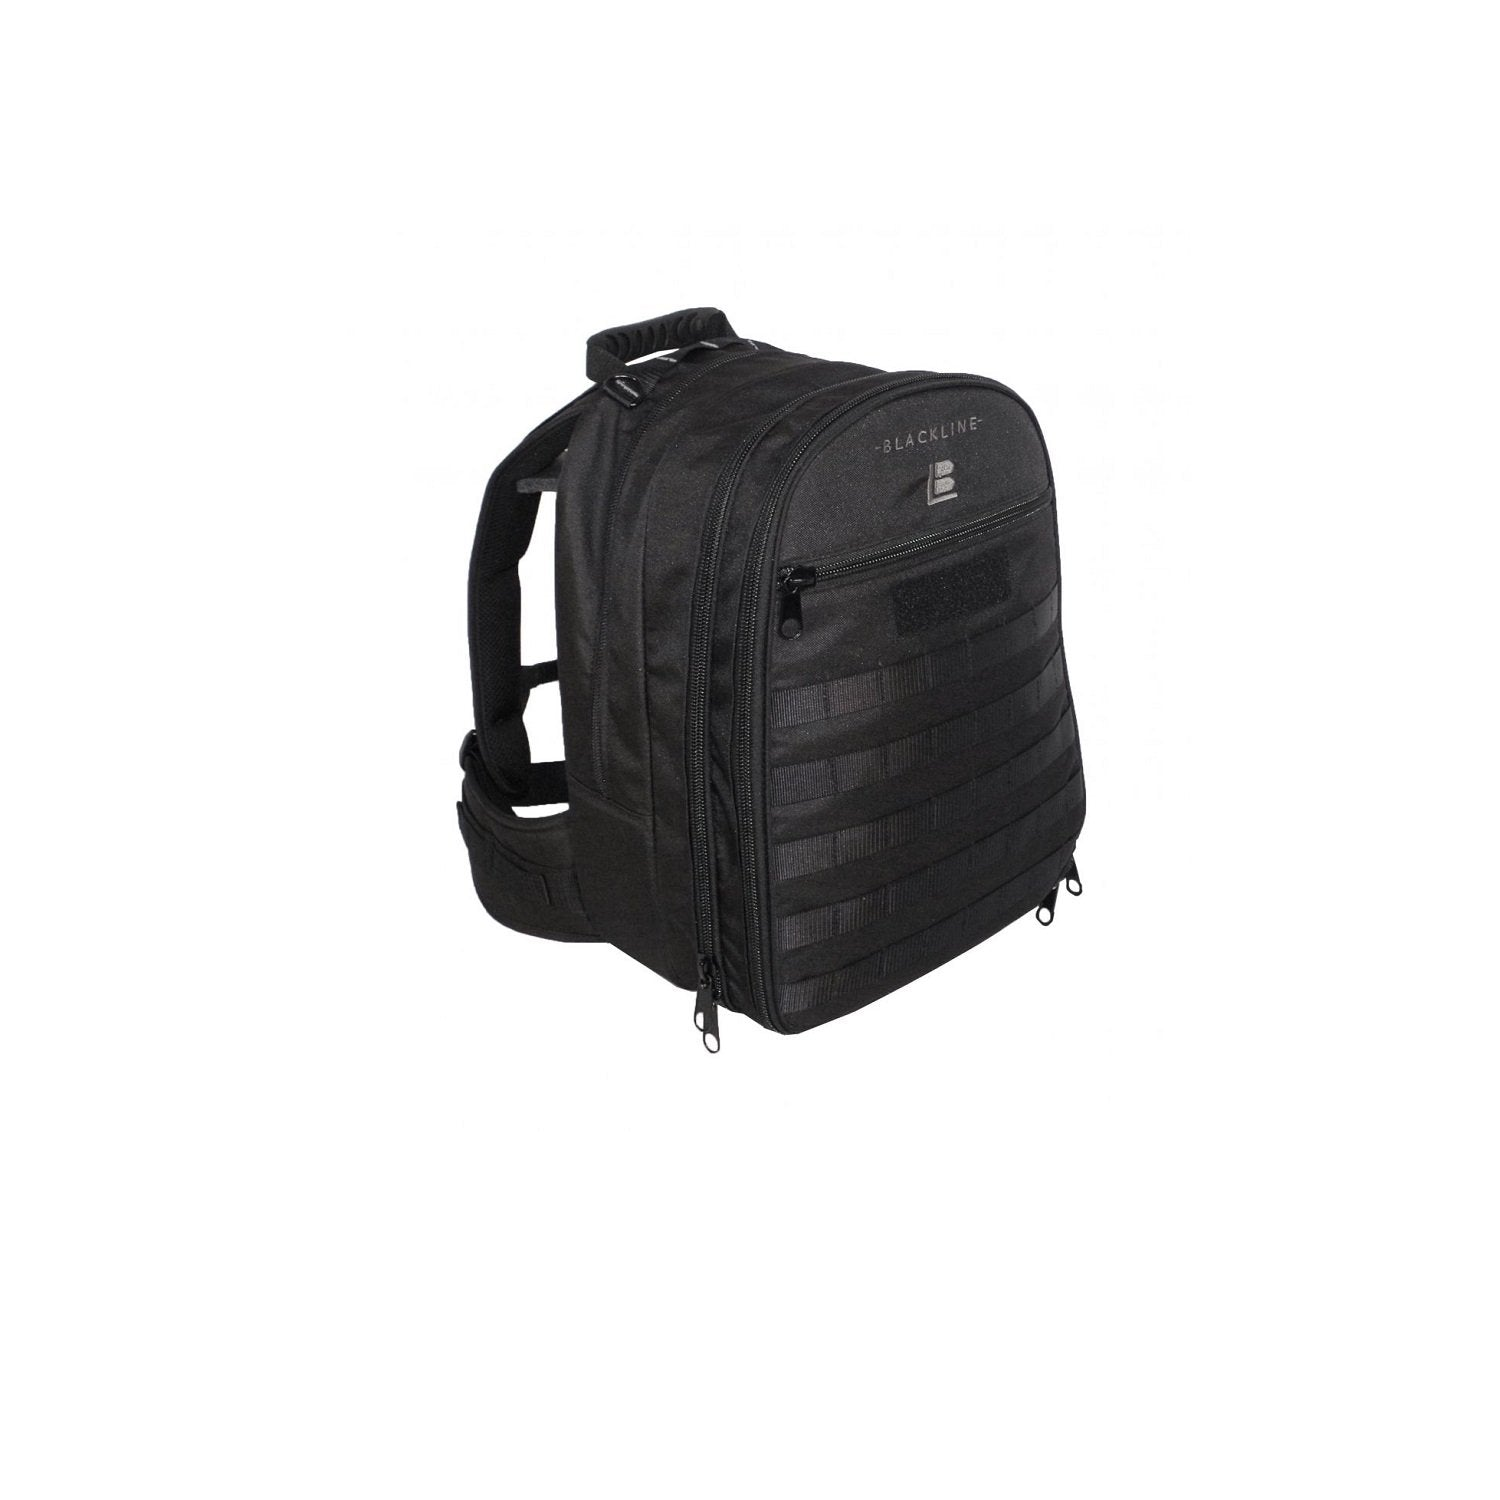 Black Line Range Pack - Black